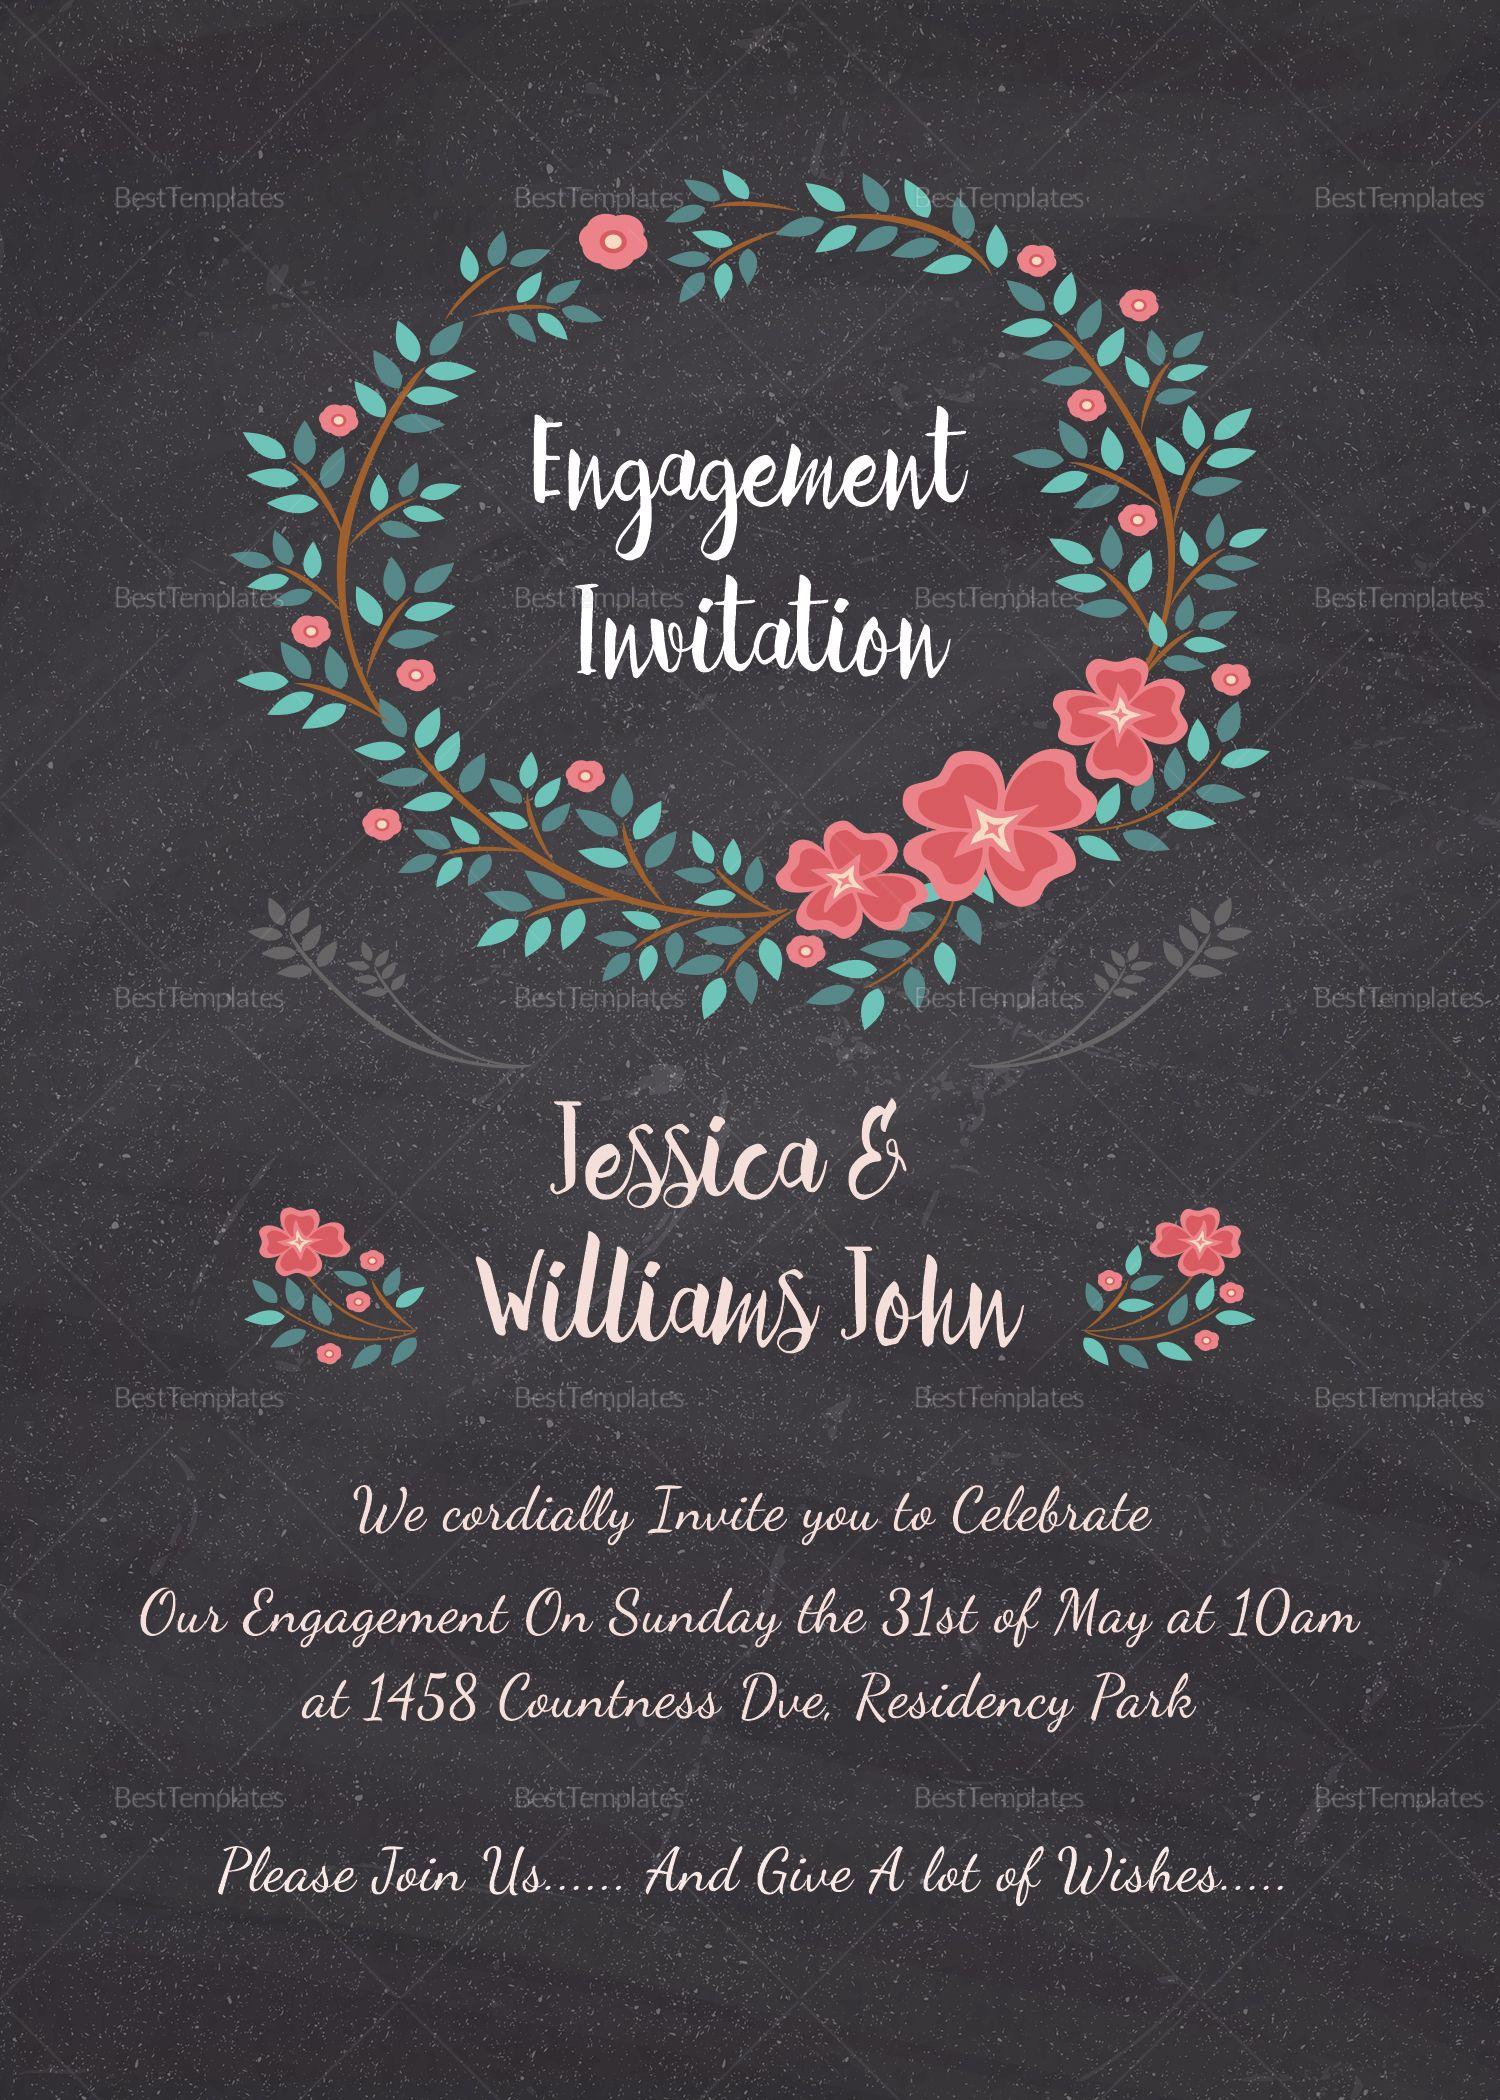 Engagement Invitation Card Template Throughout Engagement Invitati Engagement Invitation Cards Engagement Invitation Template Engagement Invitation Card Design